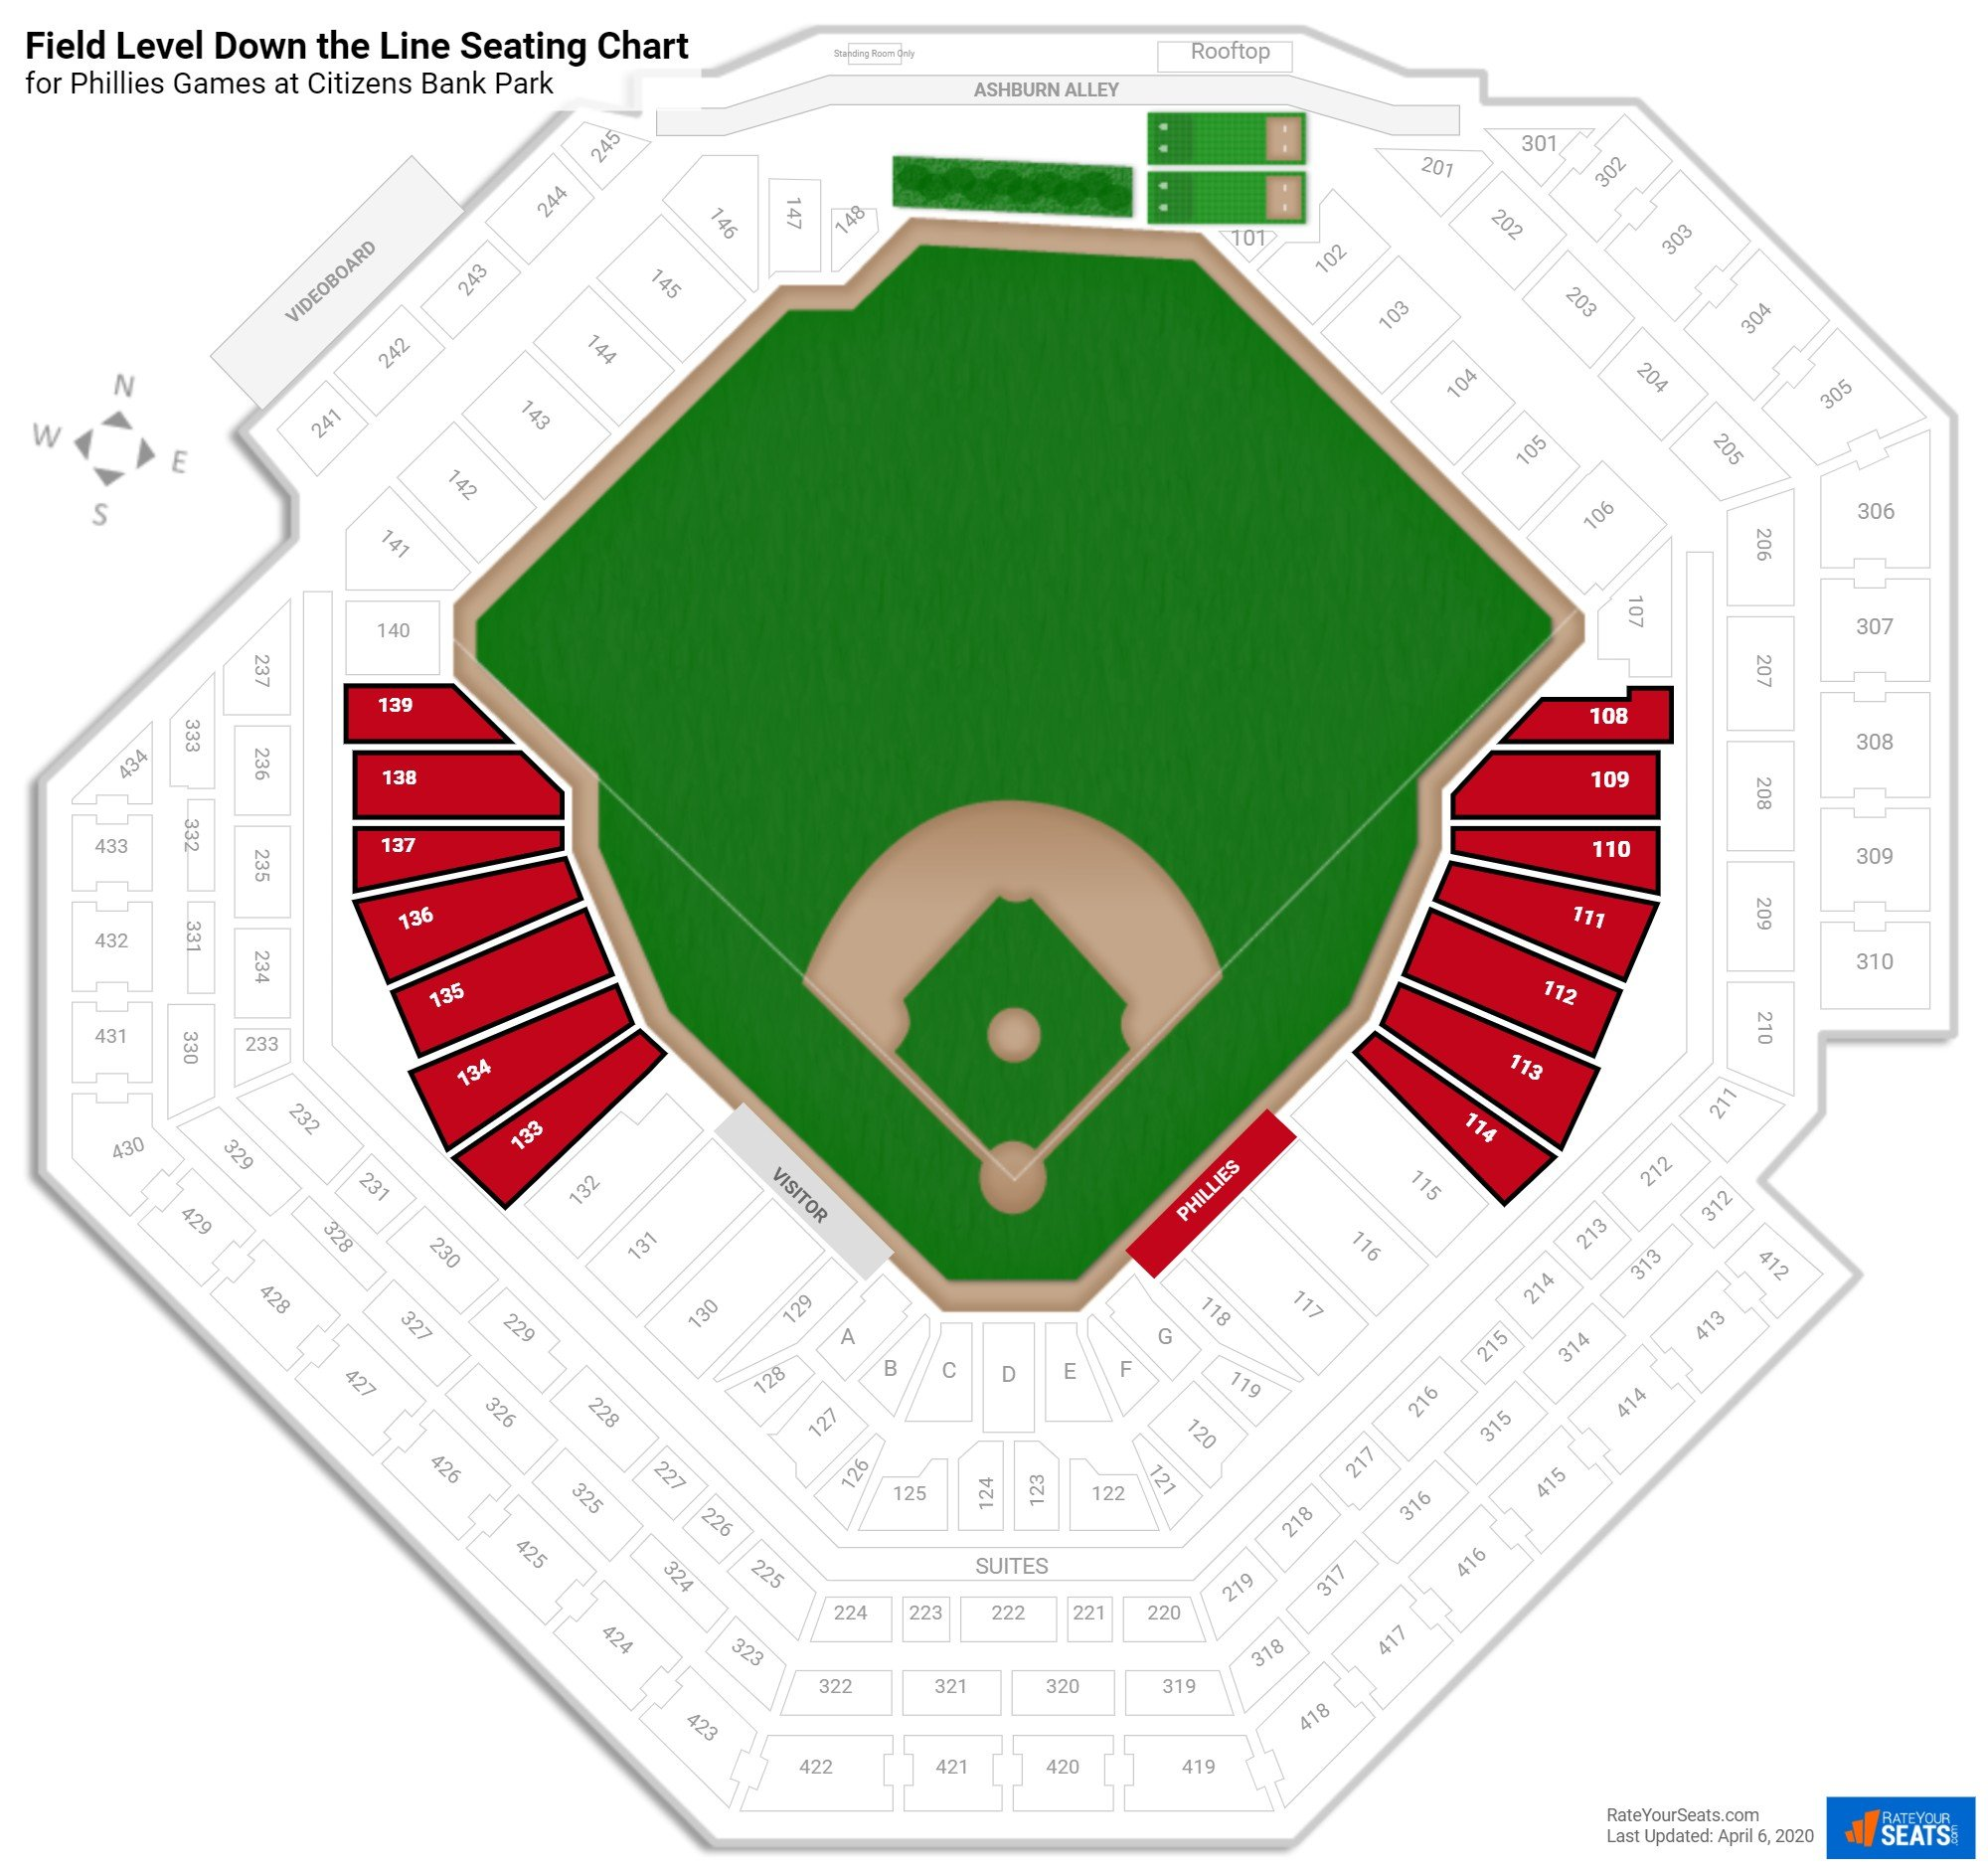 Citizens Bank Park Field Level Down the Line seating chart